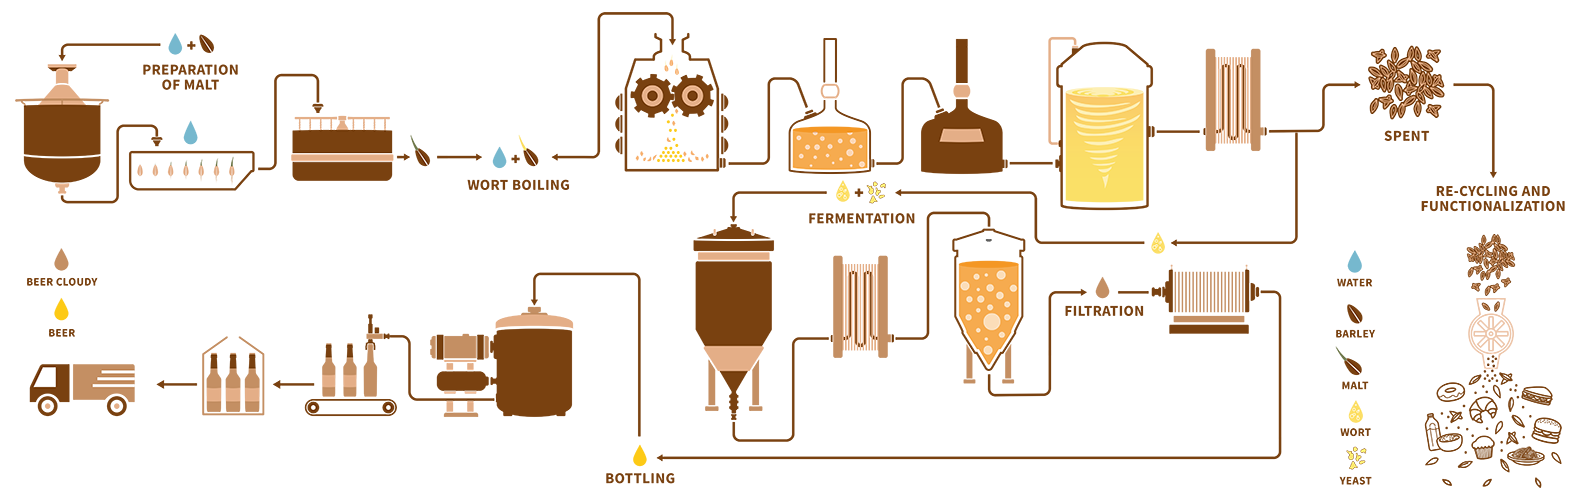 funbrew process